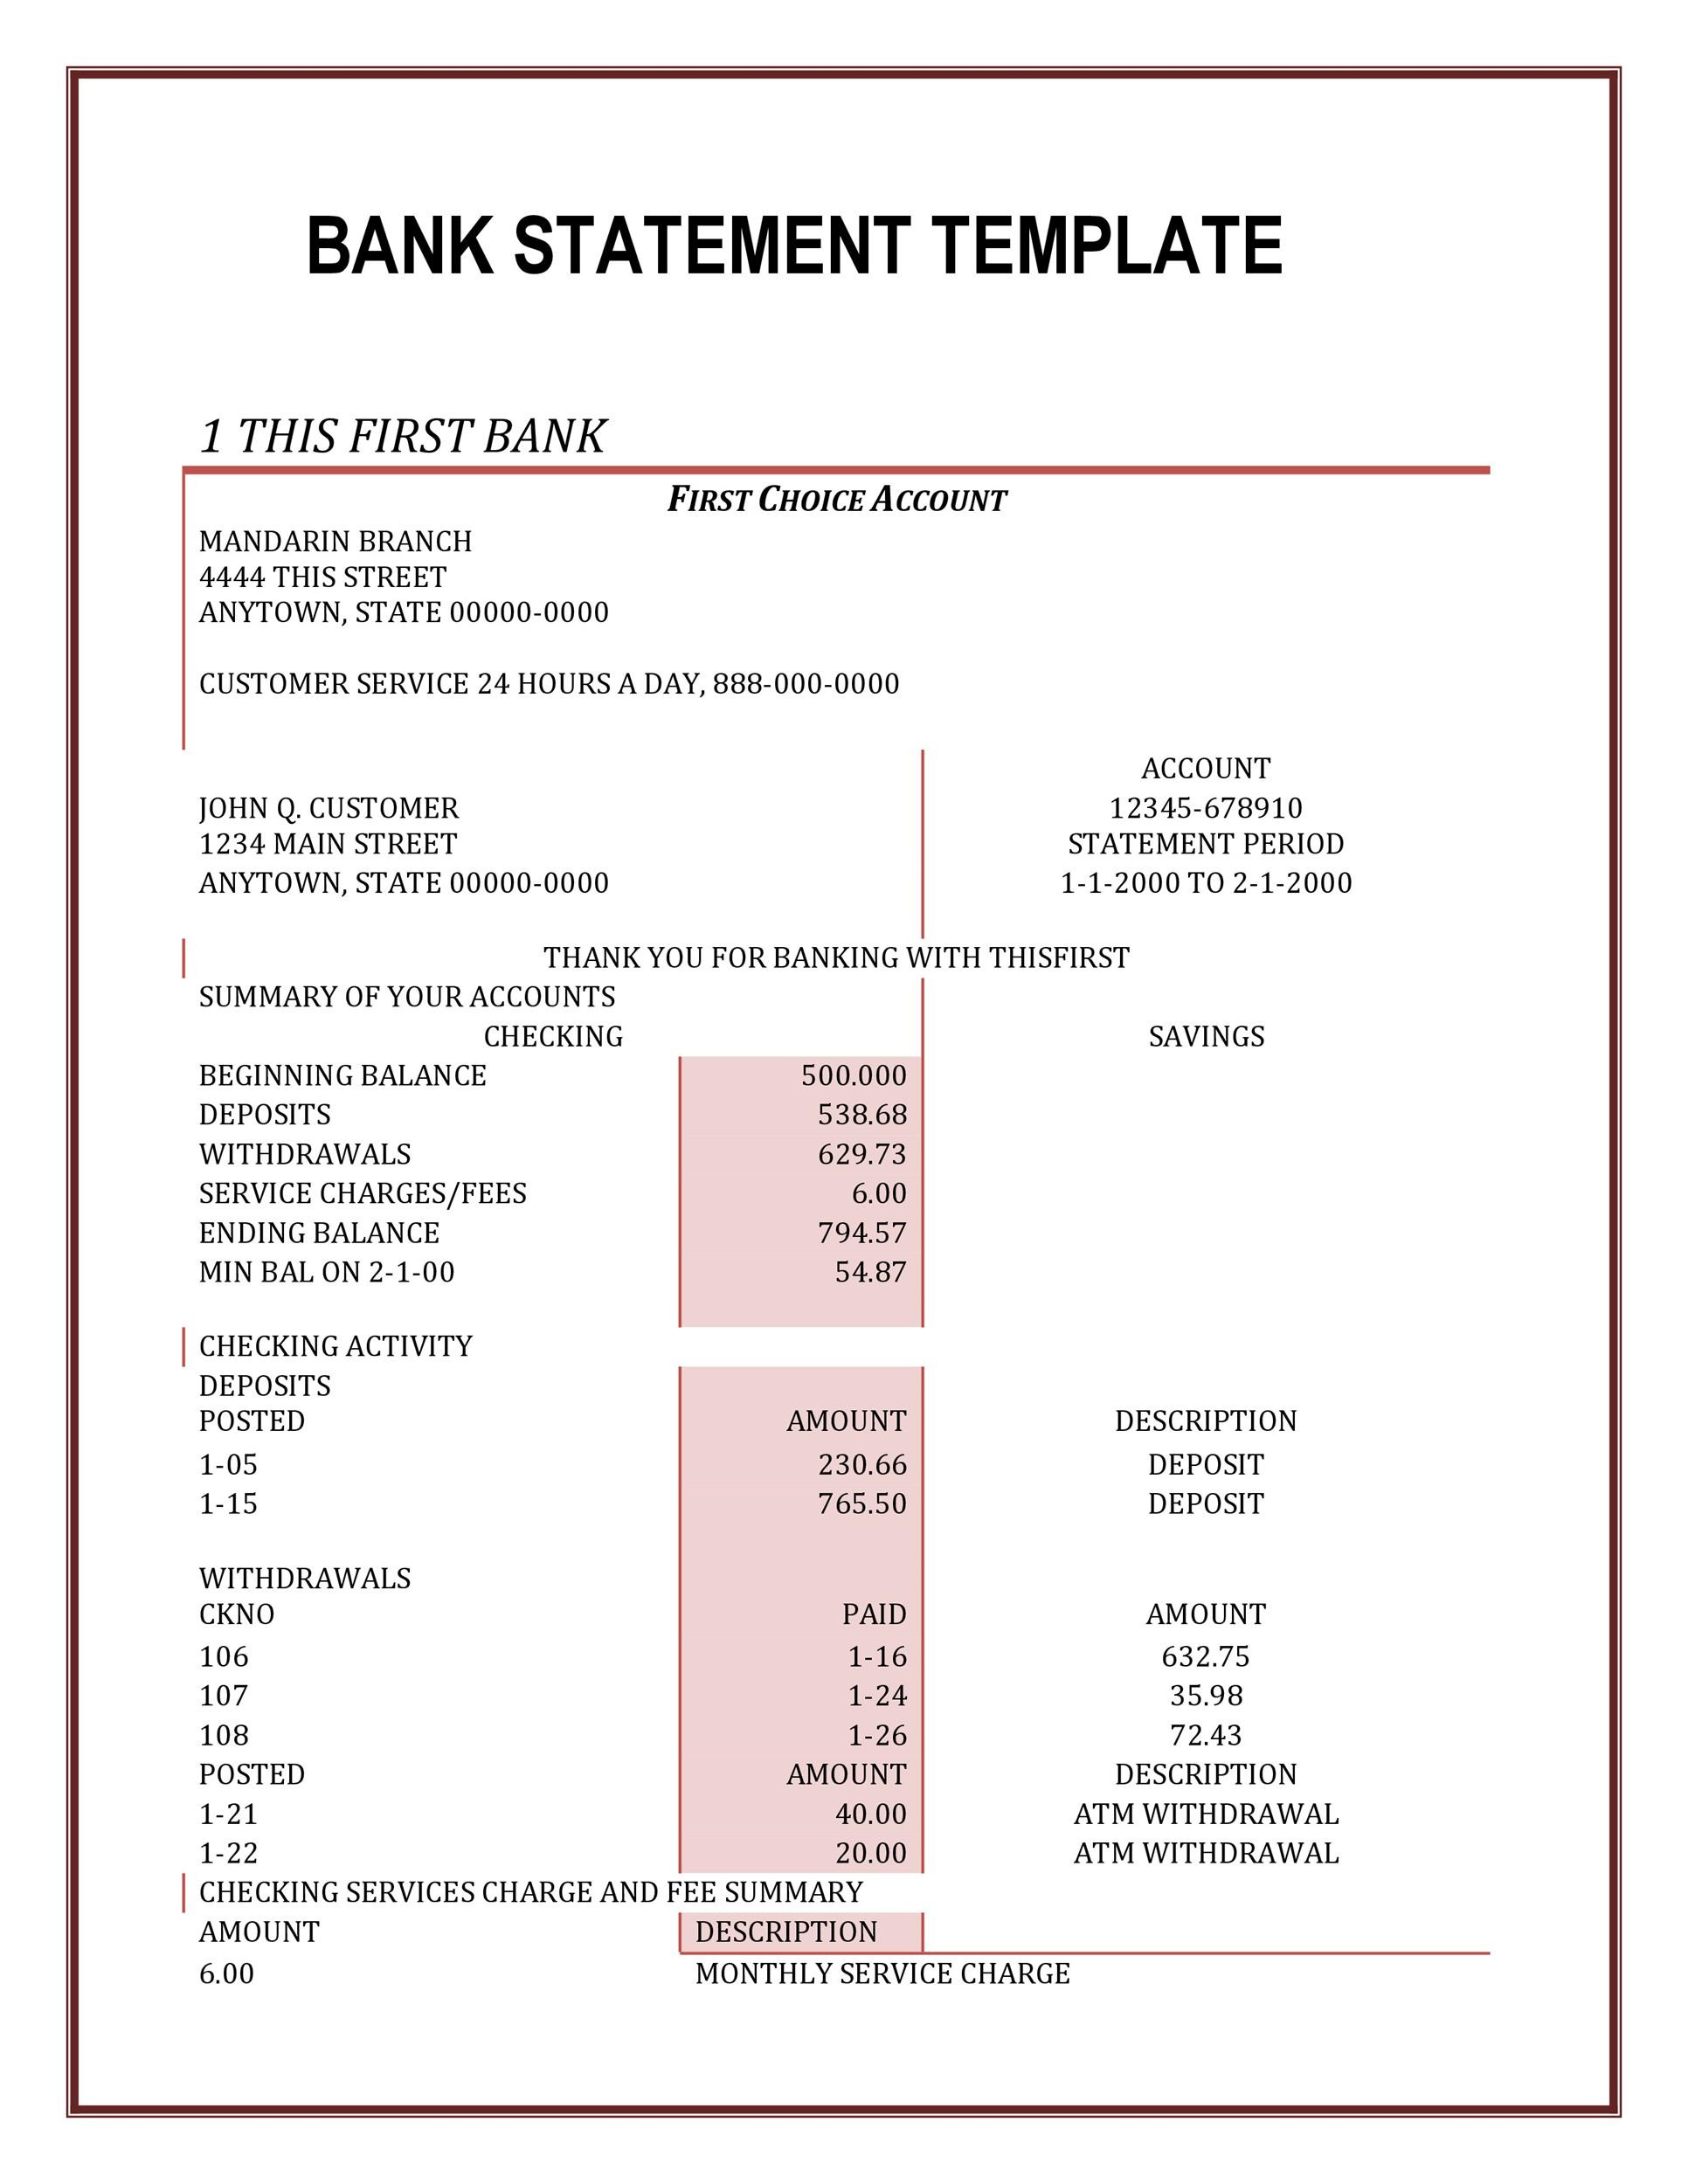 Free bank statement template 16